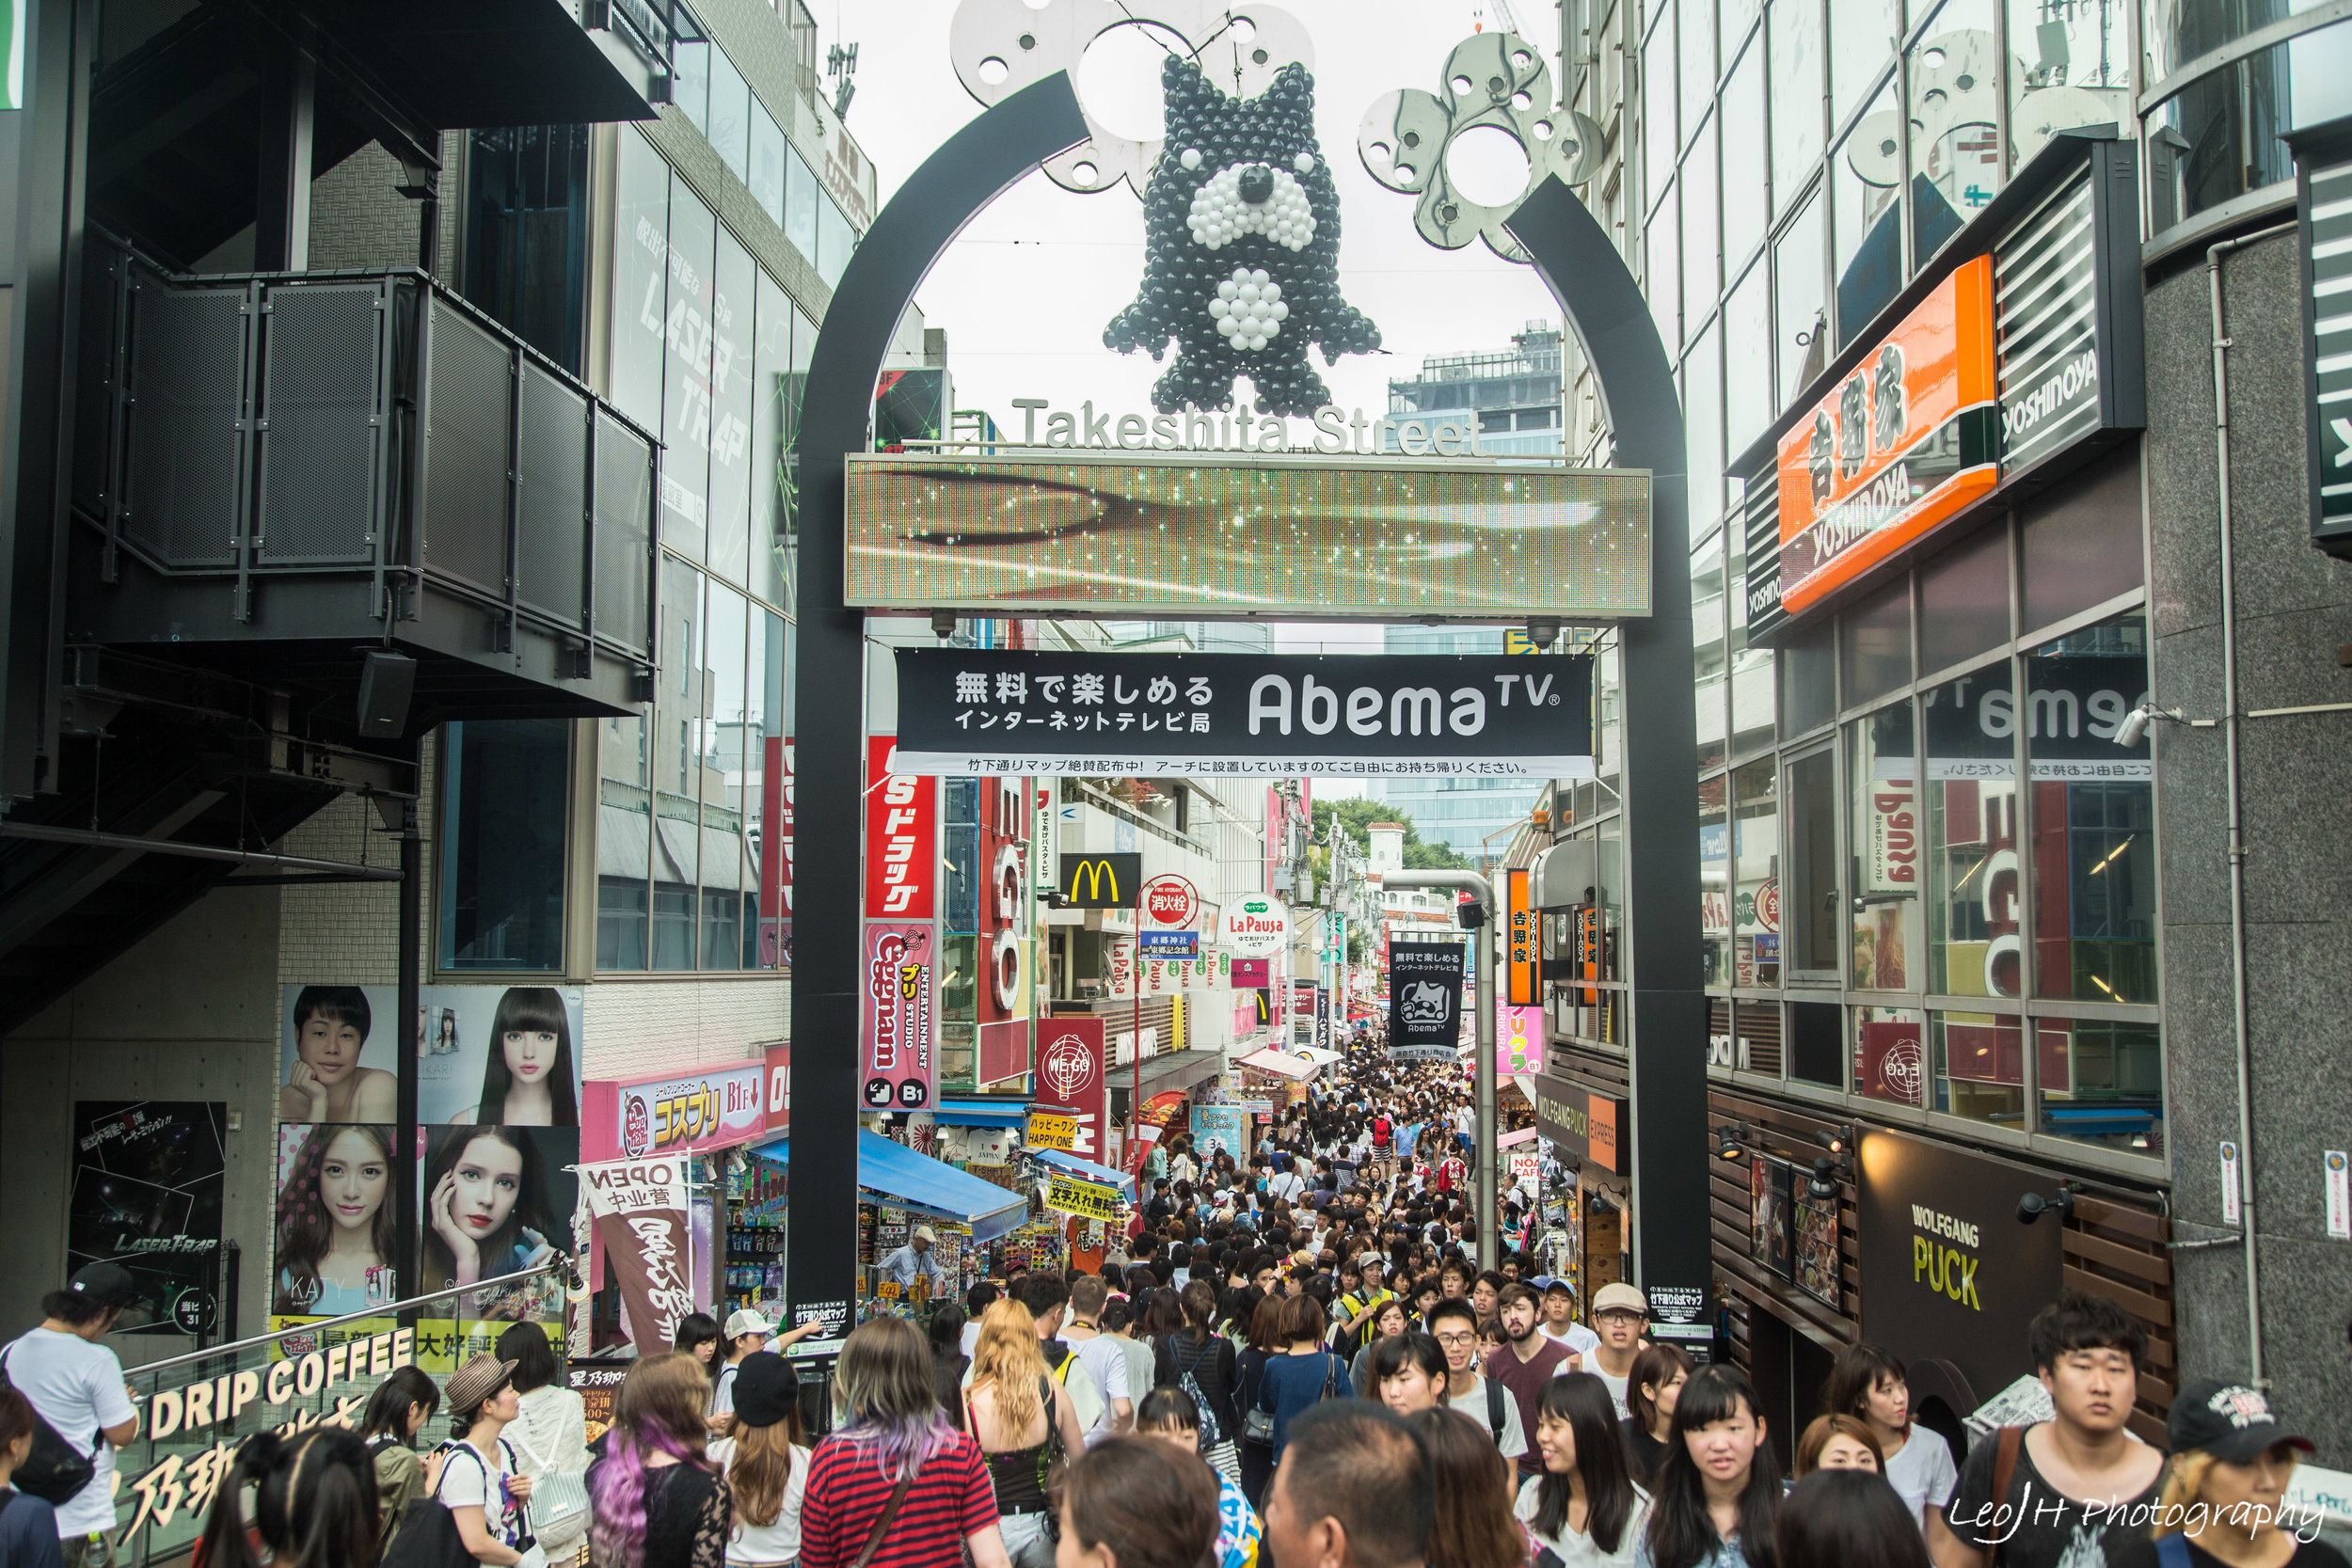 Harajuku's Takeshita Street. Was it a good idea to visit on a Sunday?